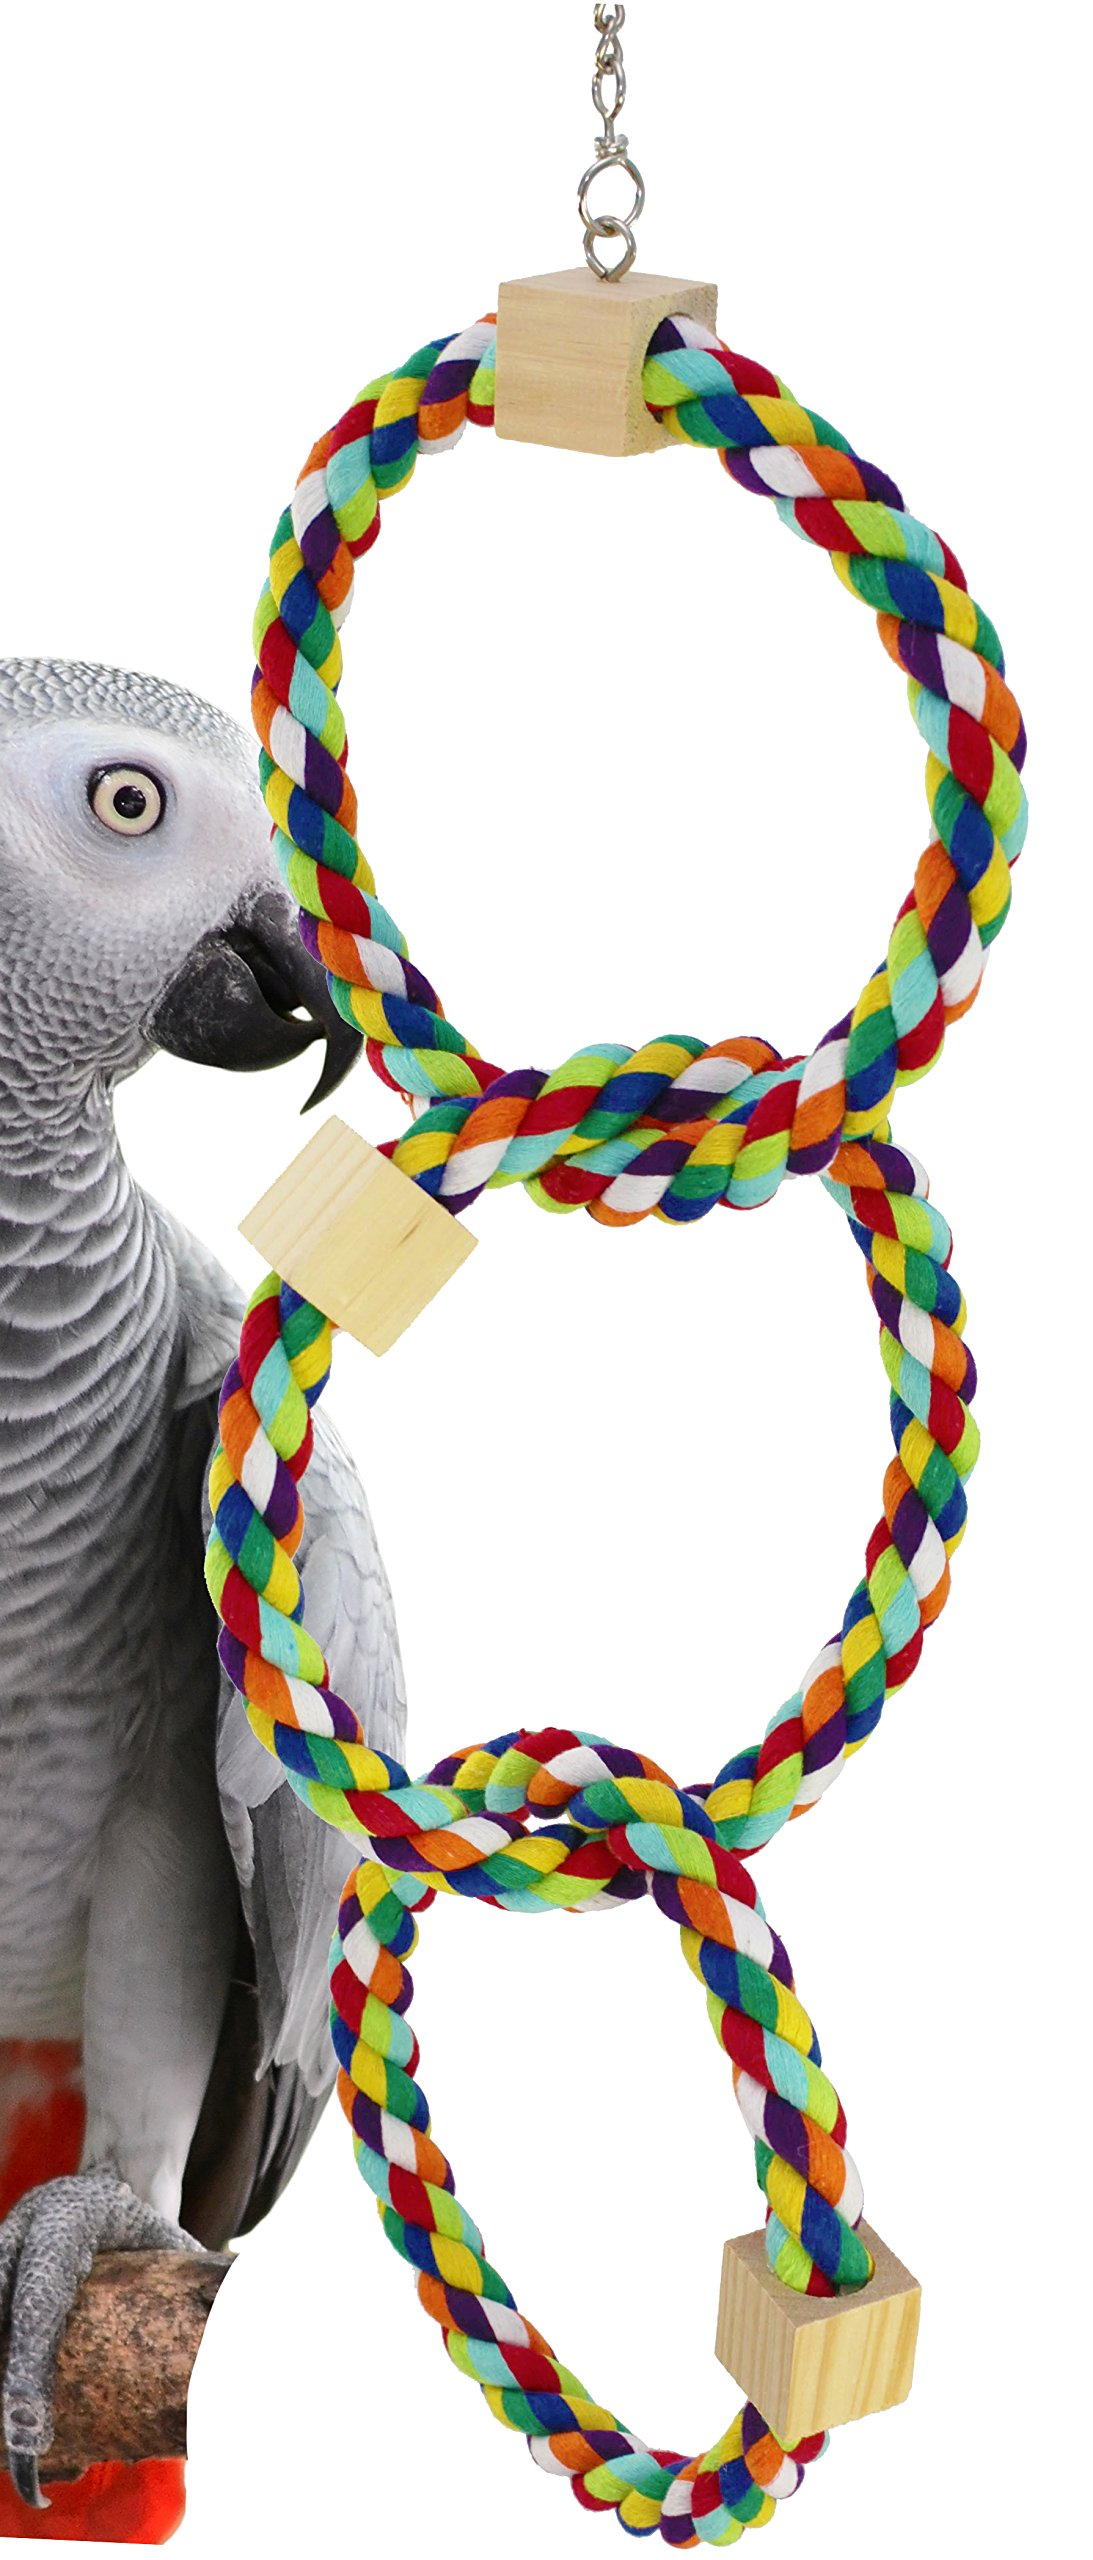 Bonka Bird Toys 1678 Tri Rainbow Ring Rope Swing Bird Toy Parrot cage Cages African Grey Conure (Twin Rainbow Ring) by Bonka Bird Toys